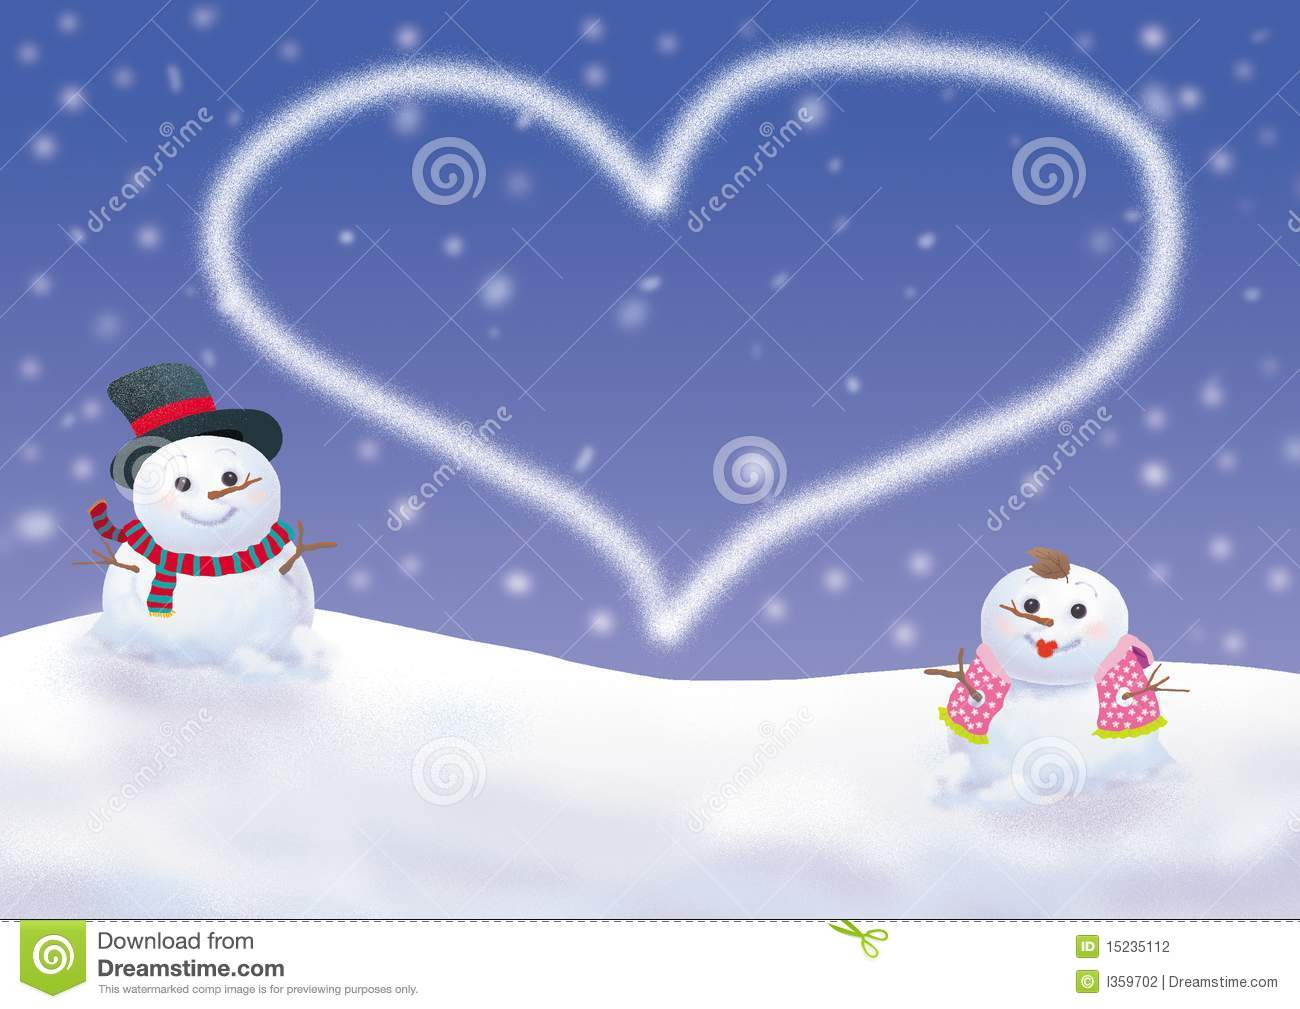 Animated Girl Wallpaper Free Download Winter Background With Snowman Stock Illustration Image